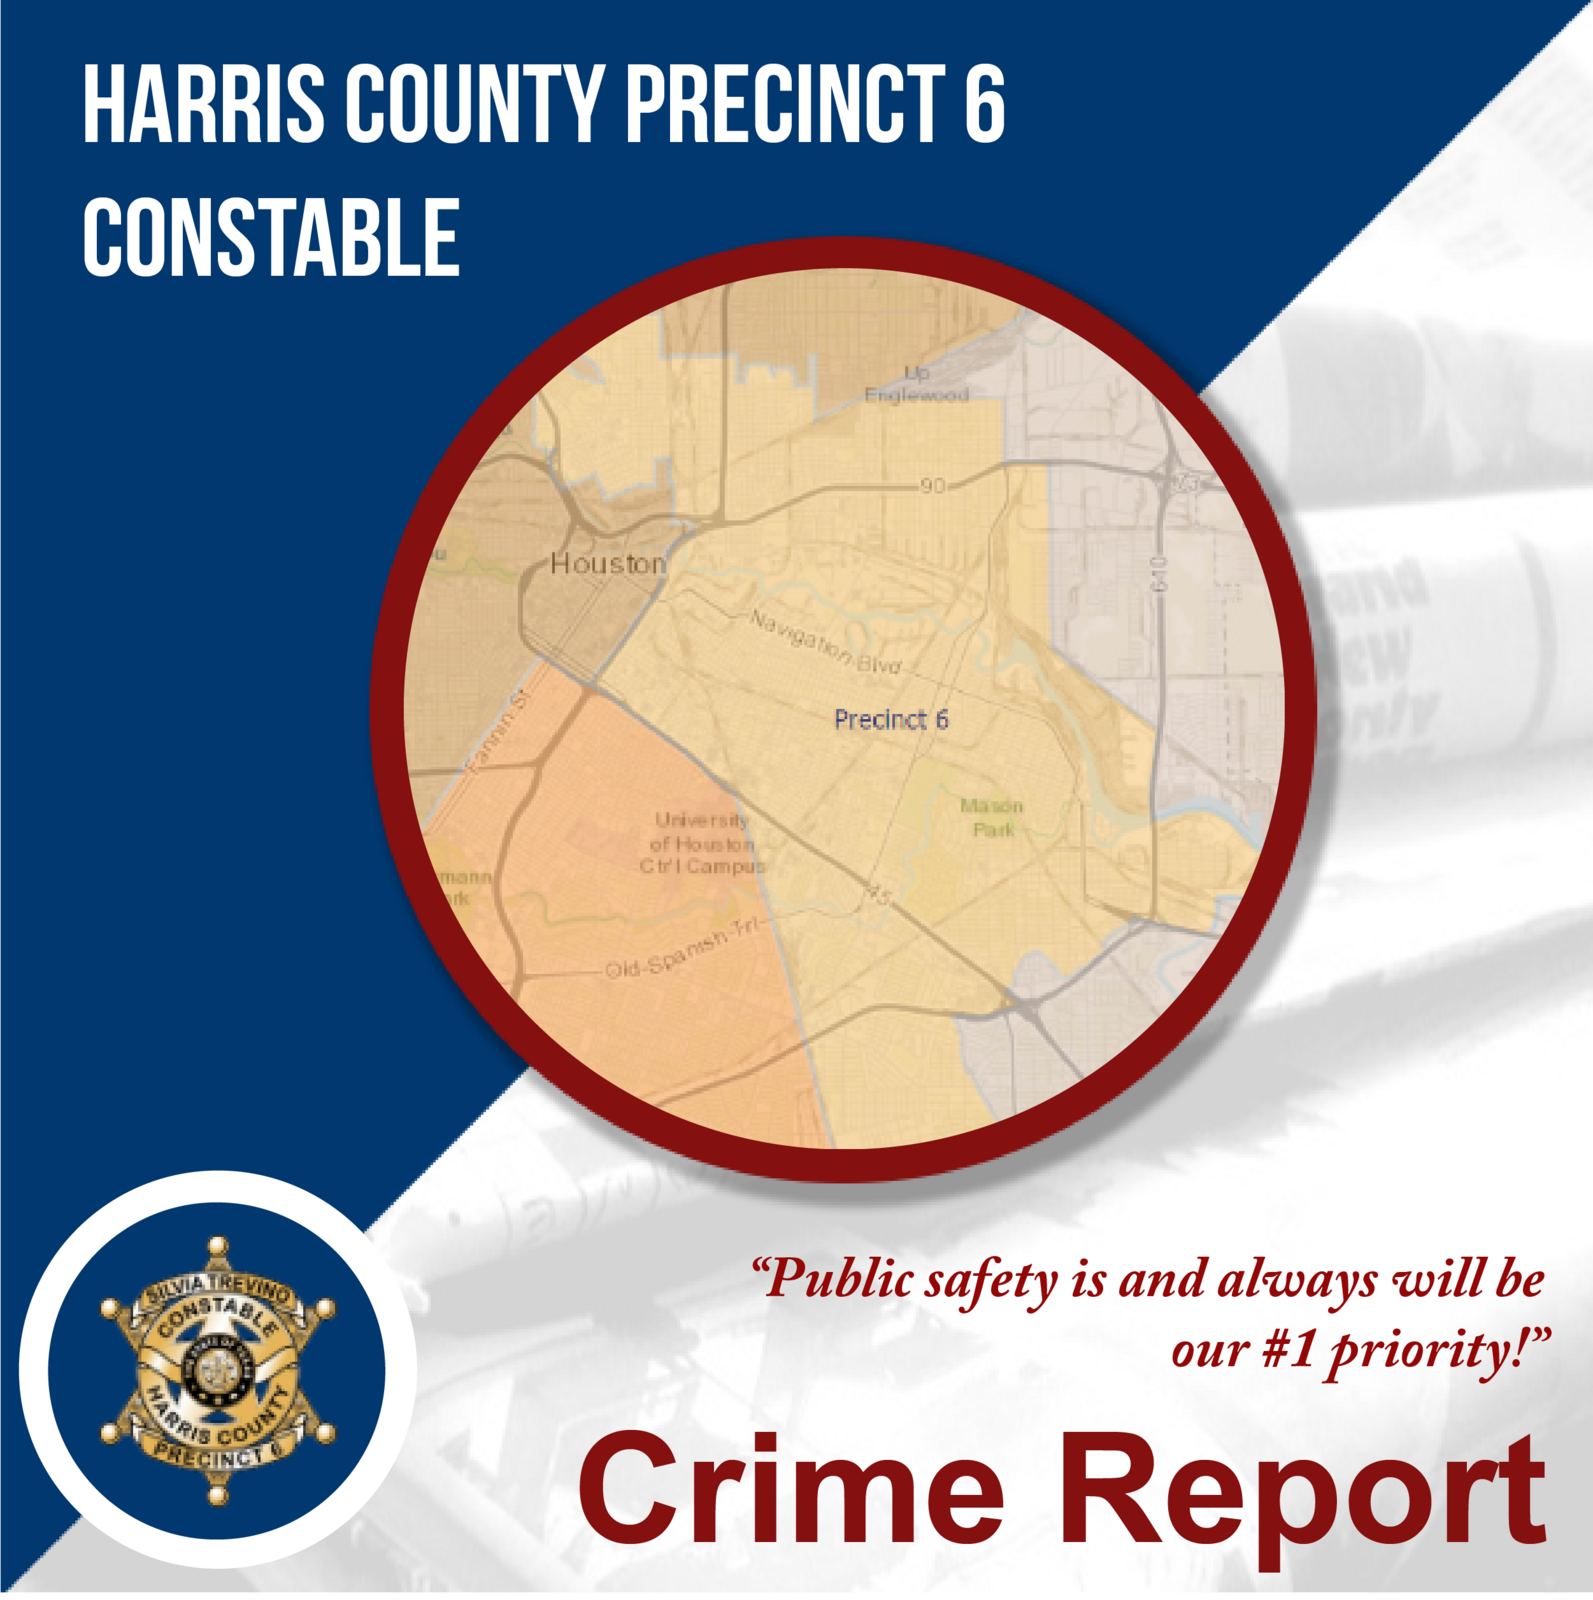 Precinct 6 Crime Report - Greater Fifth Ward (Harris County ... on